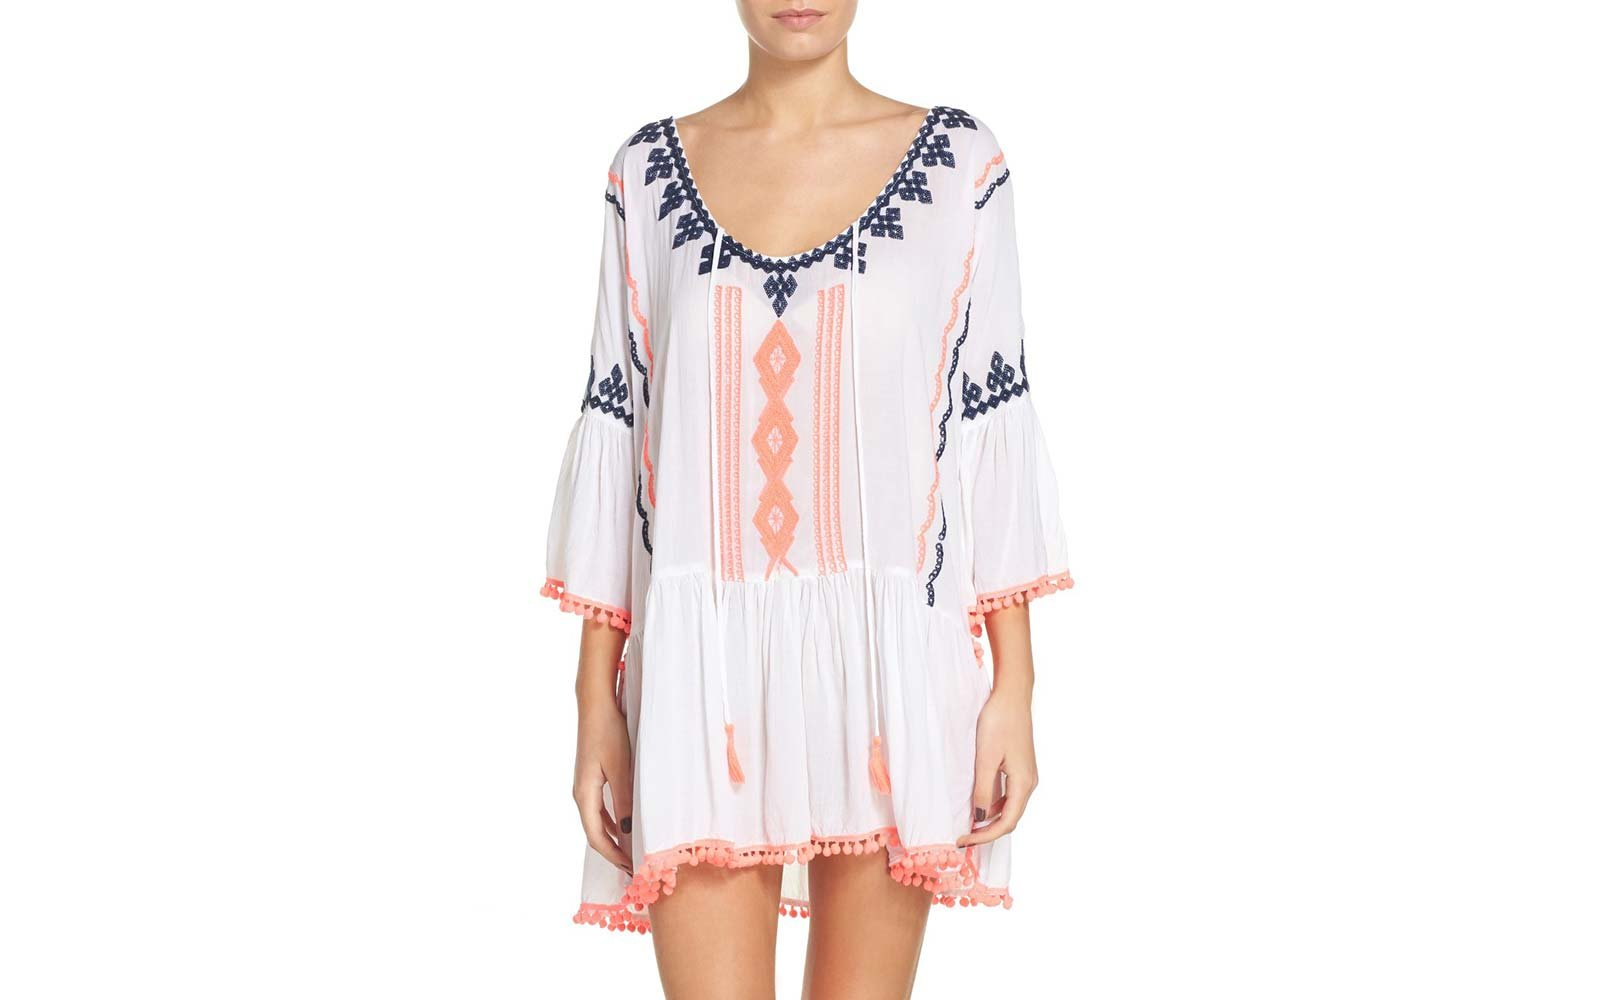 eea450efb5dc9 Stylish swim cover-ups to live in this summer | Travel + Leisure